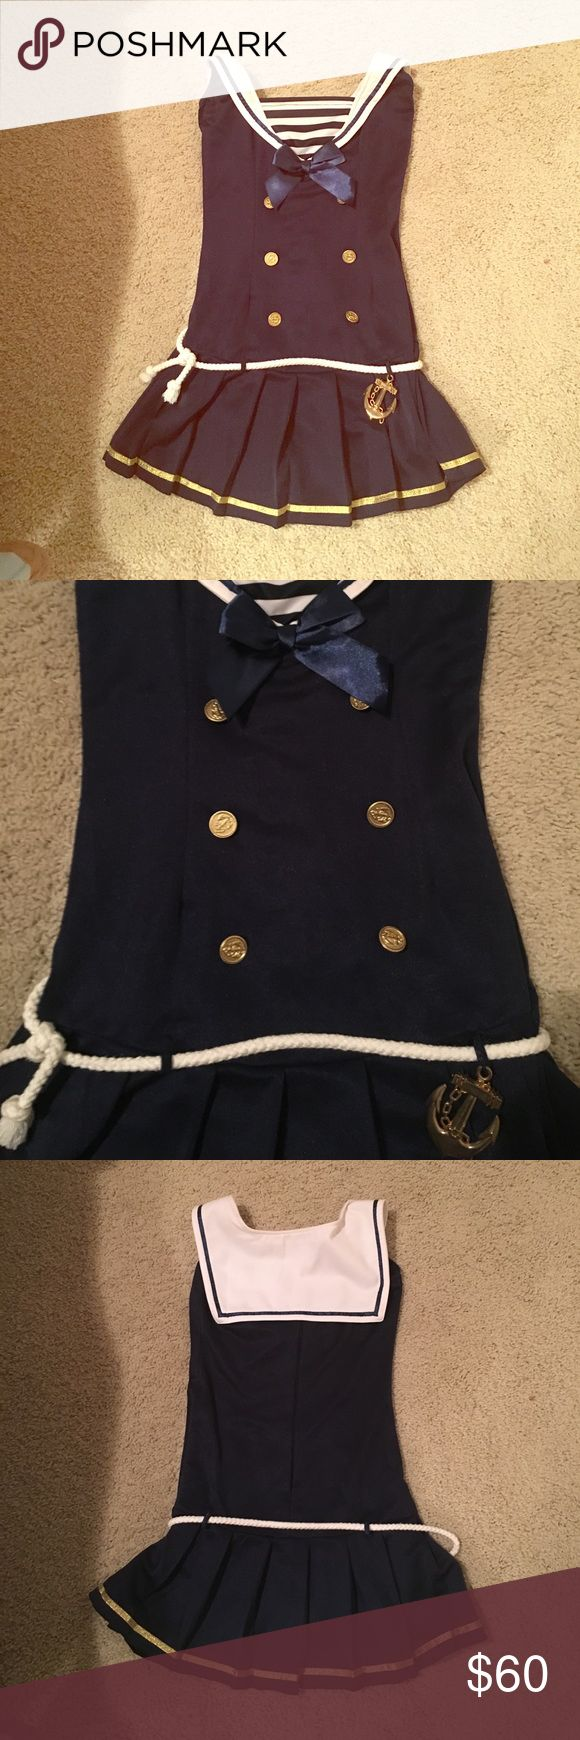 Sailor Halloween costume- Excellent condition! Worn once, size small. Bundle for more discounts 😊 Dresses